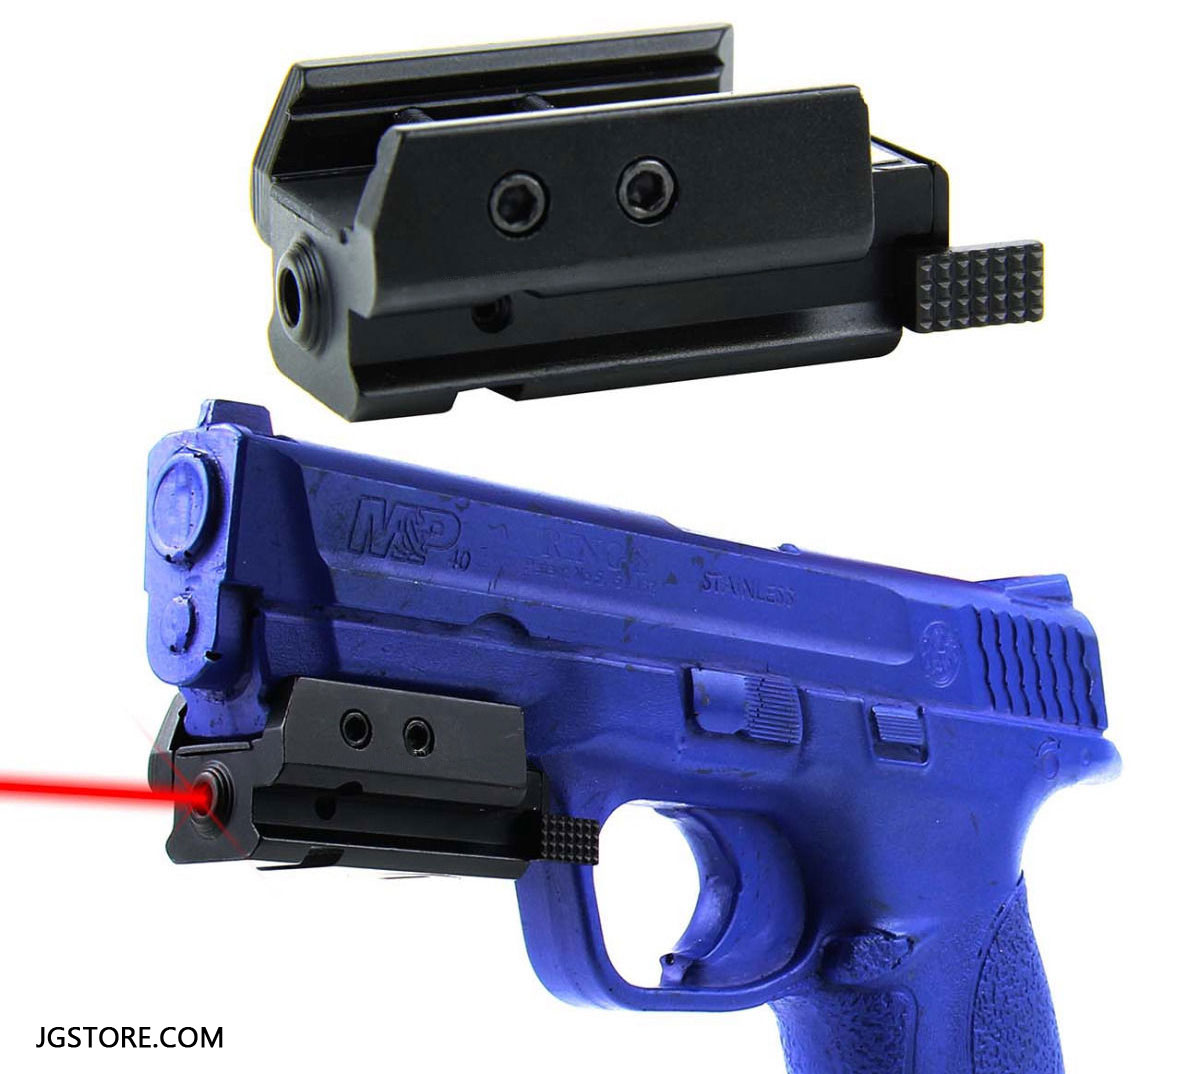 Low Profile Pistol Mini Picatinny / Weaver Rail Red Dot Laser Sight for S&W, XD, GLK, SIG